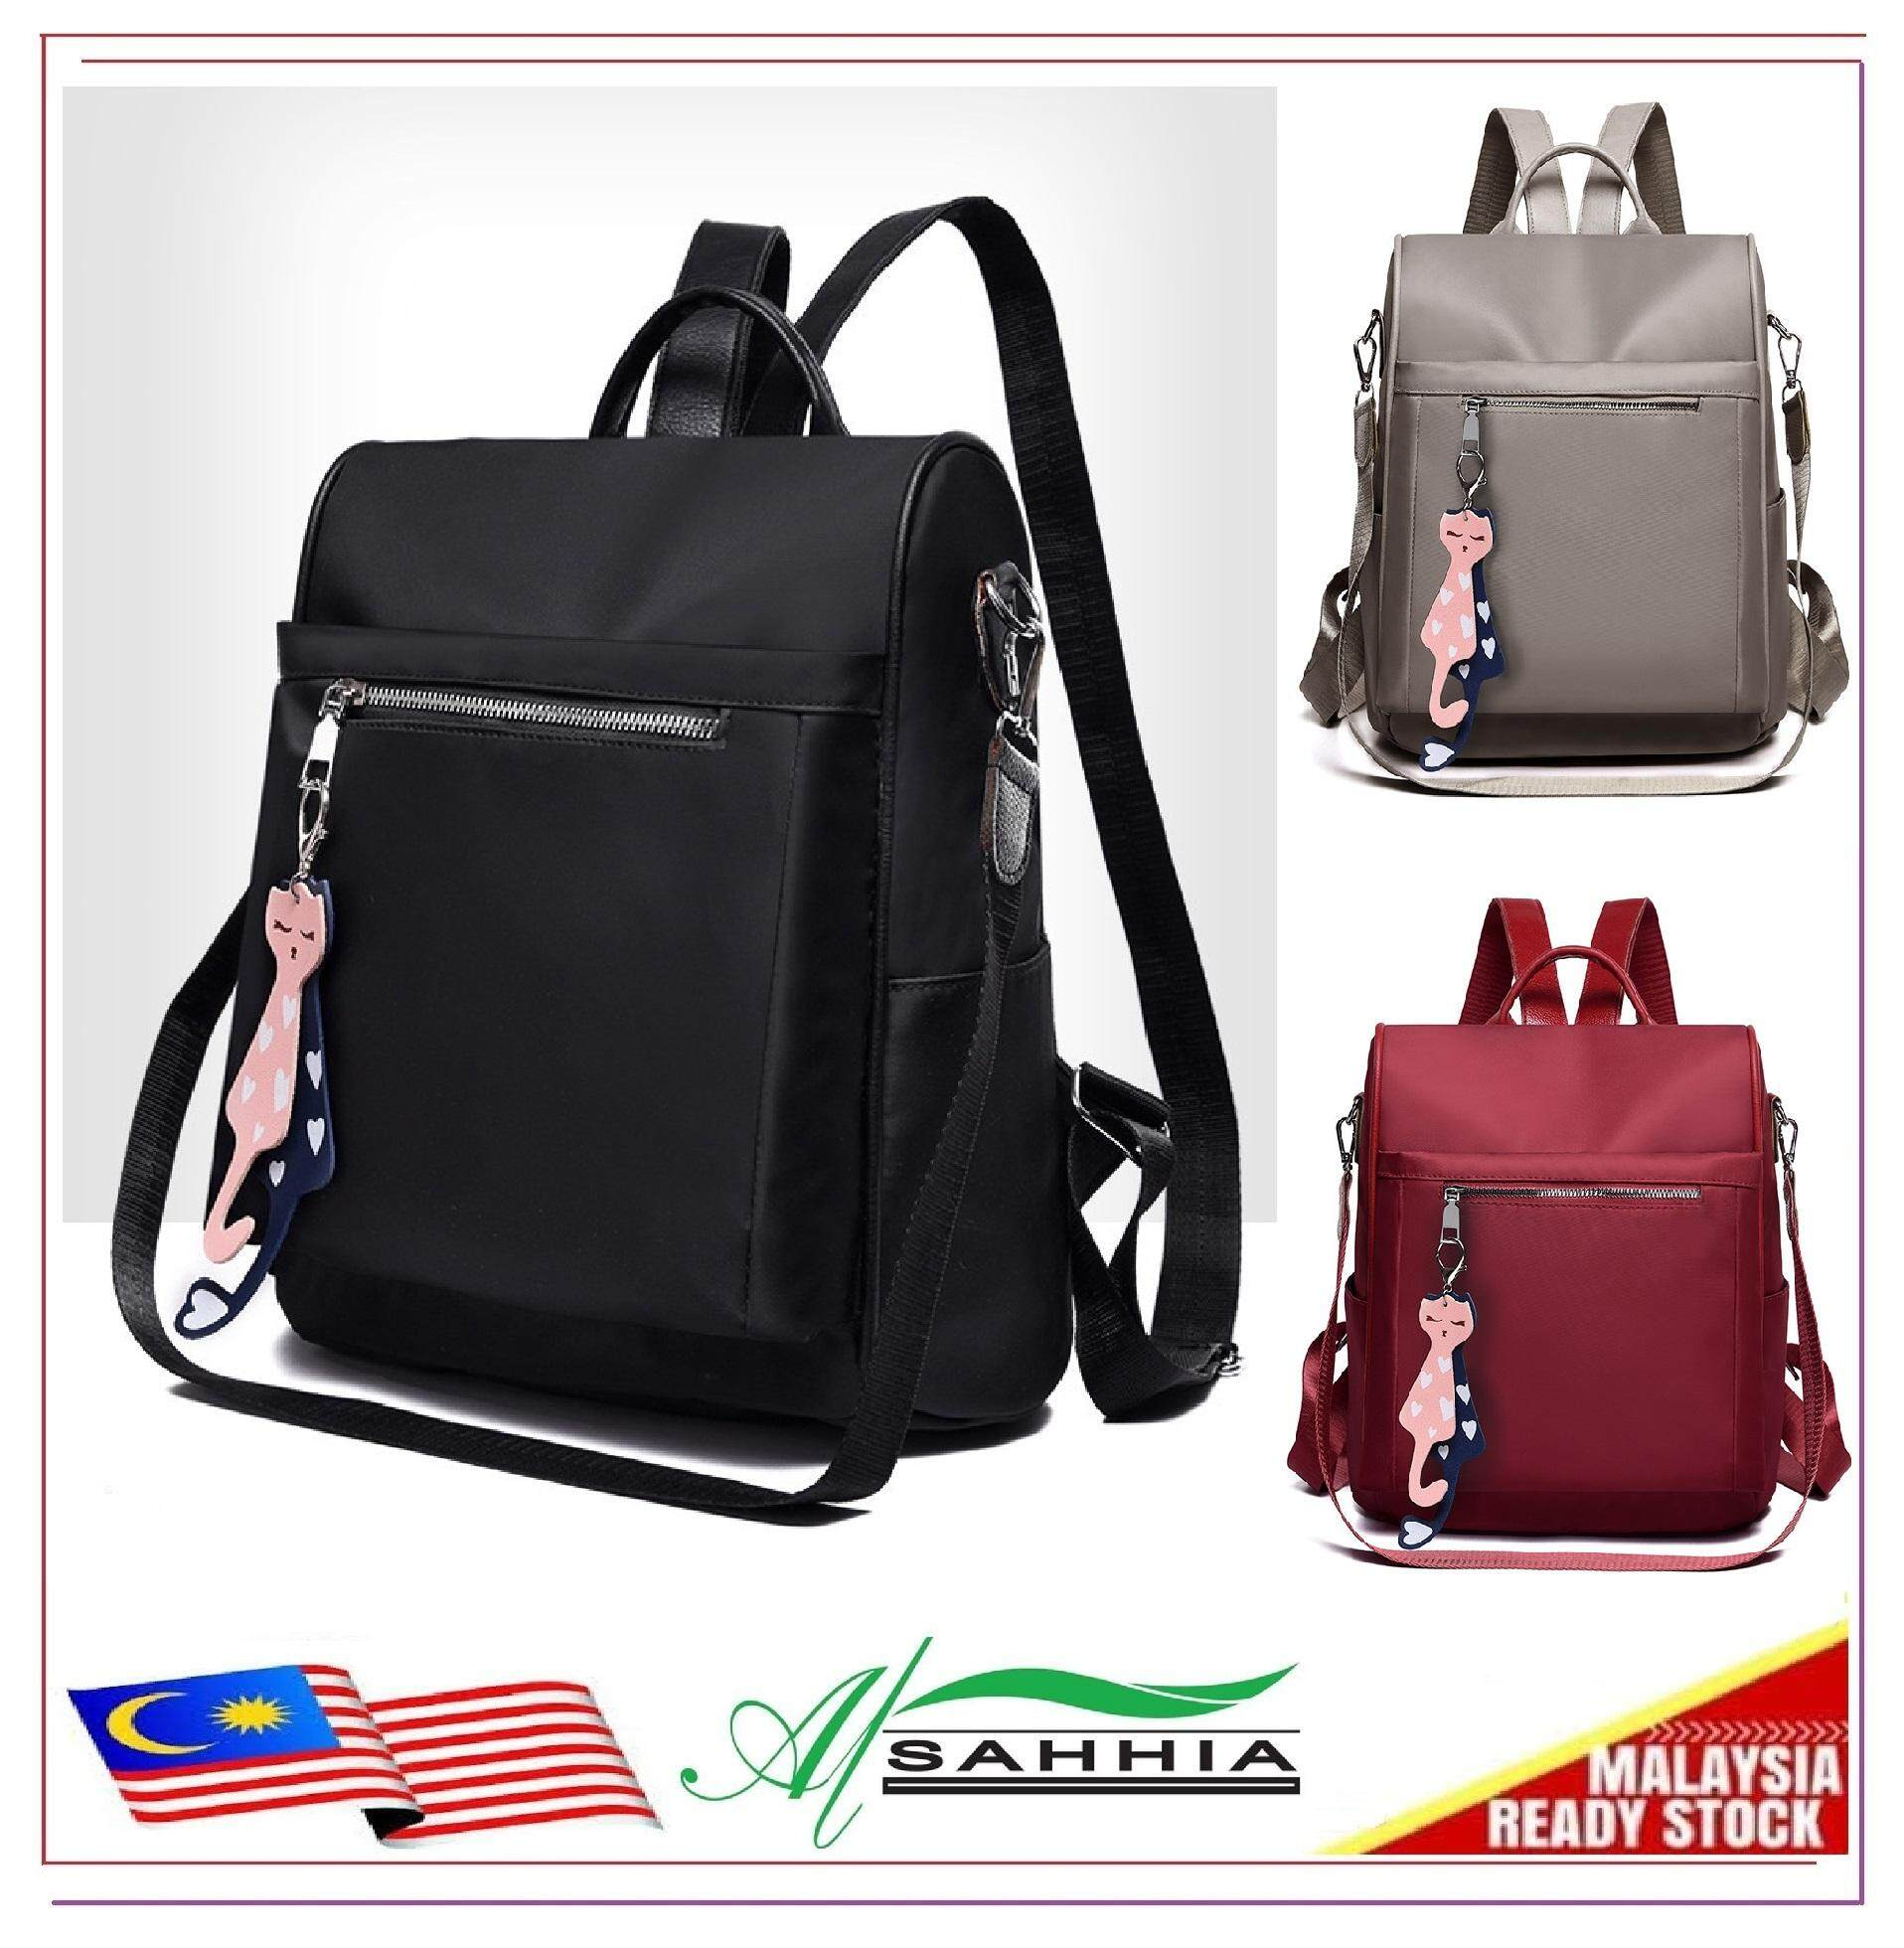 0af0b57932d6 Latest Women s Bags Only on Lazada Malaysia!